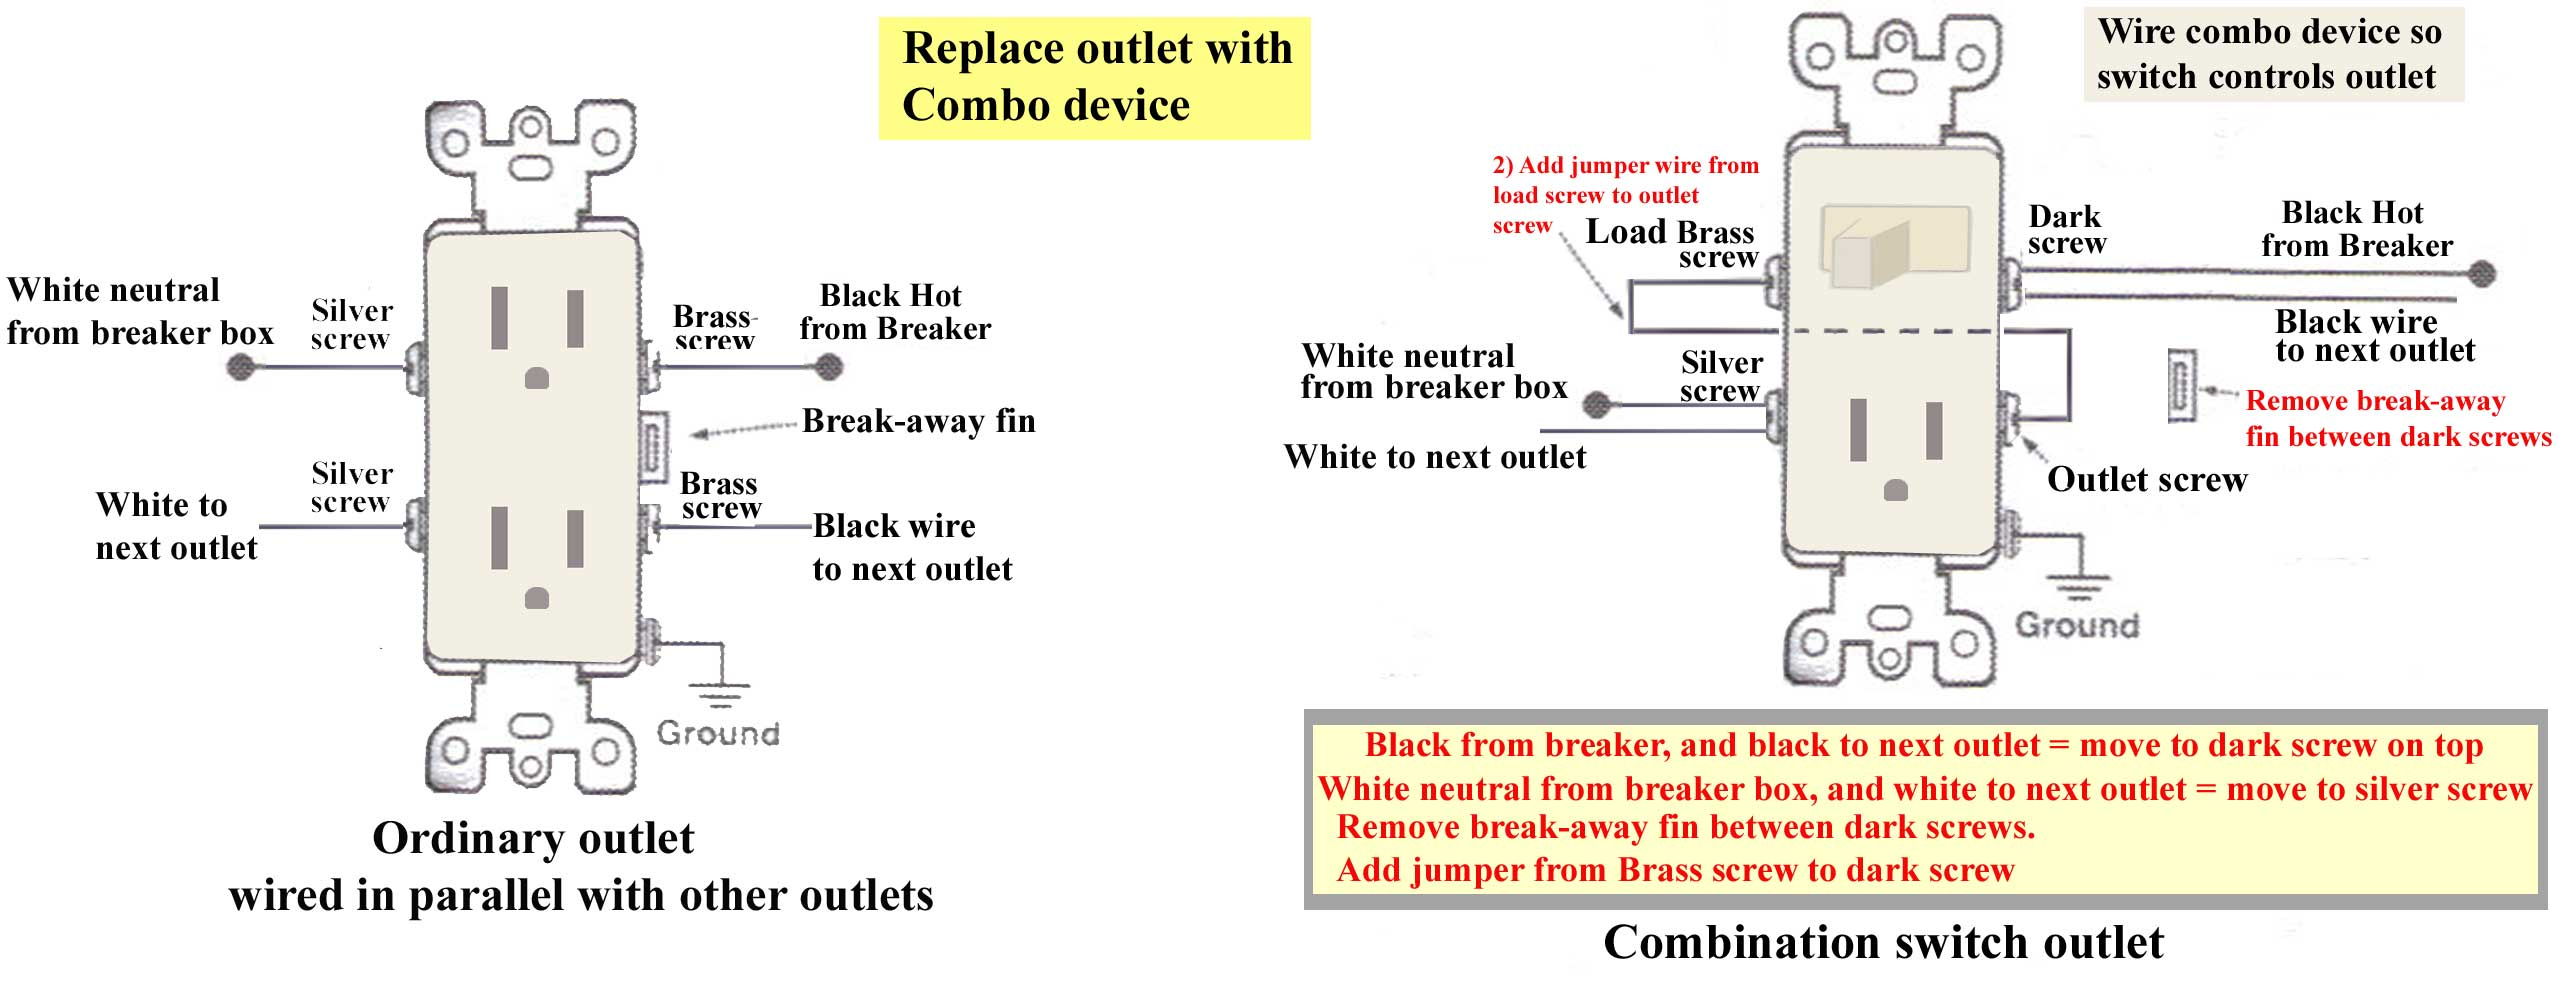 Combo switch replaces outlet 900 how to replace outlet with combo switch light switch receptacle combo wiring diagram at n-0.co